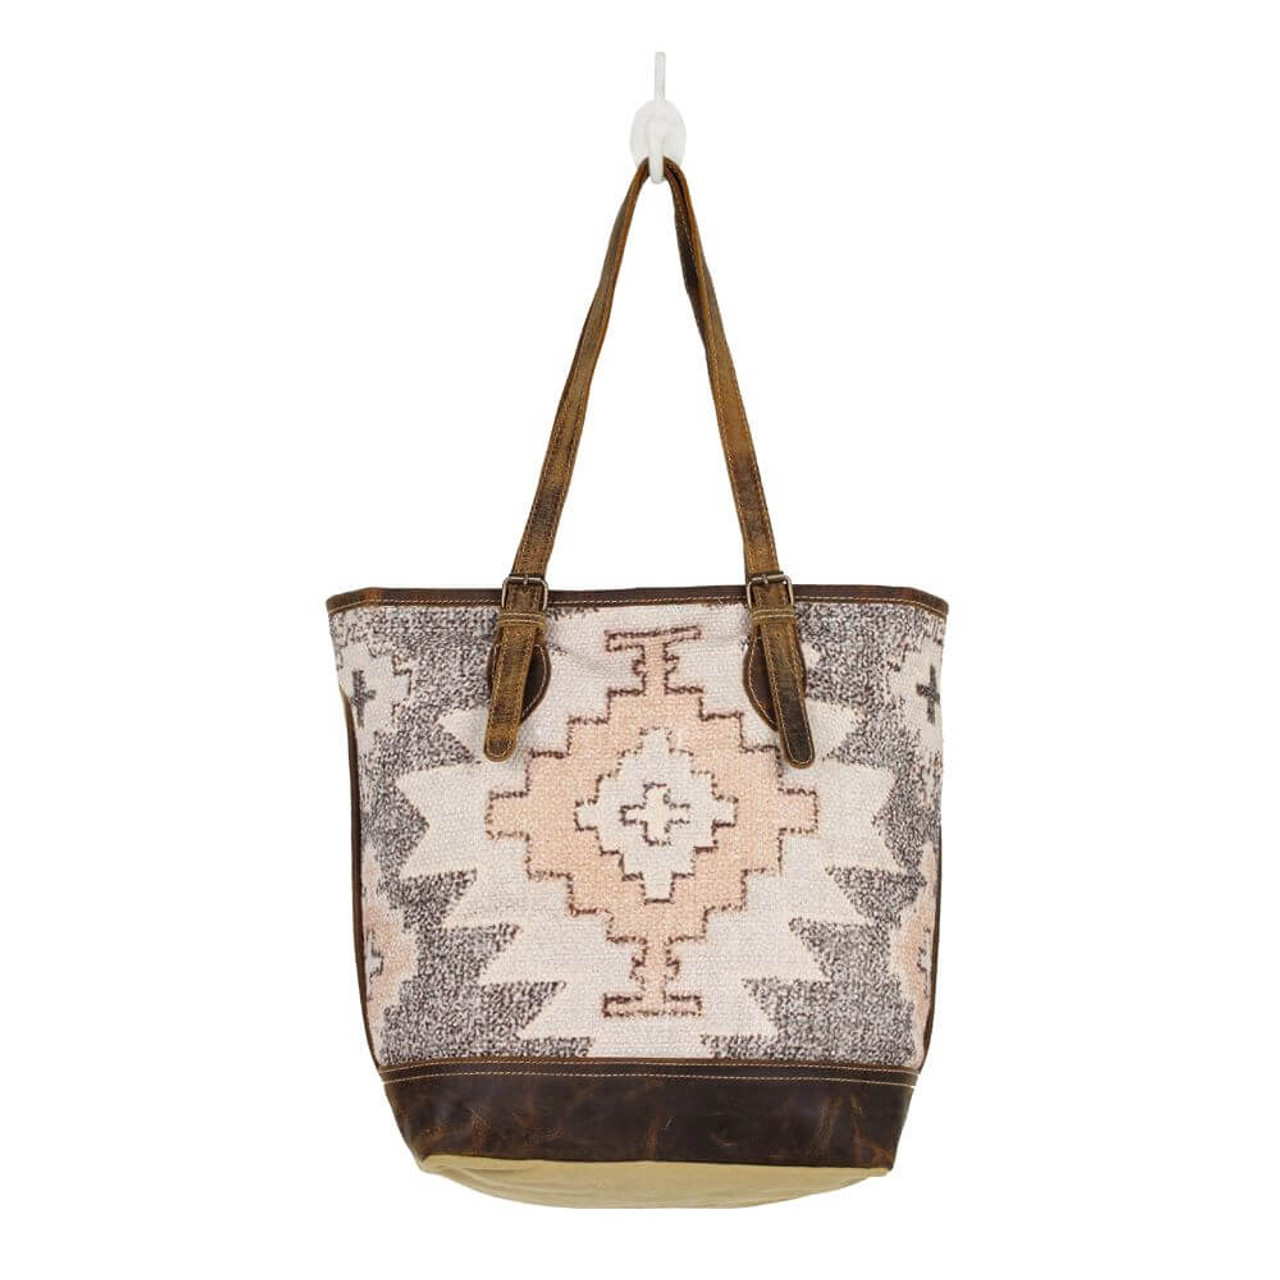 Simple yet elegant! Superbly printed rug mingled with weathered leather details. Mustard colored canvas back. Adjustable straps, zipper close at top, zipper pocket on back. Interior is fully lined and has one zipper pocket and two slip pockets.